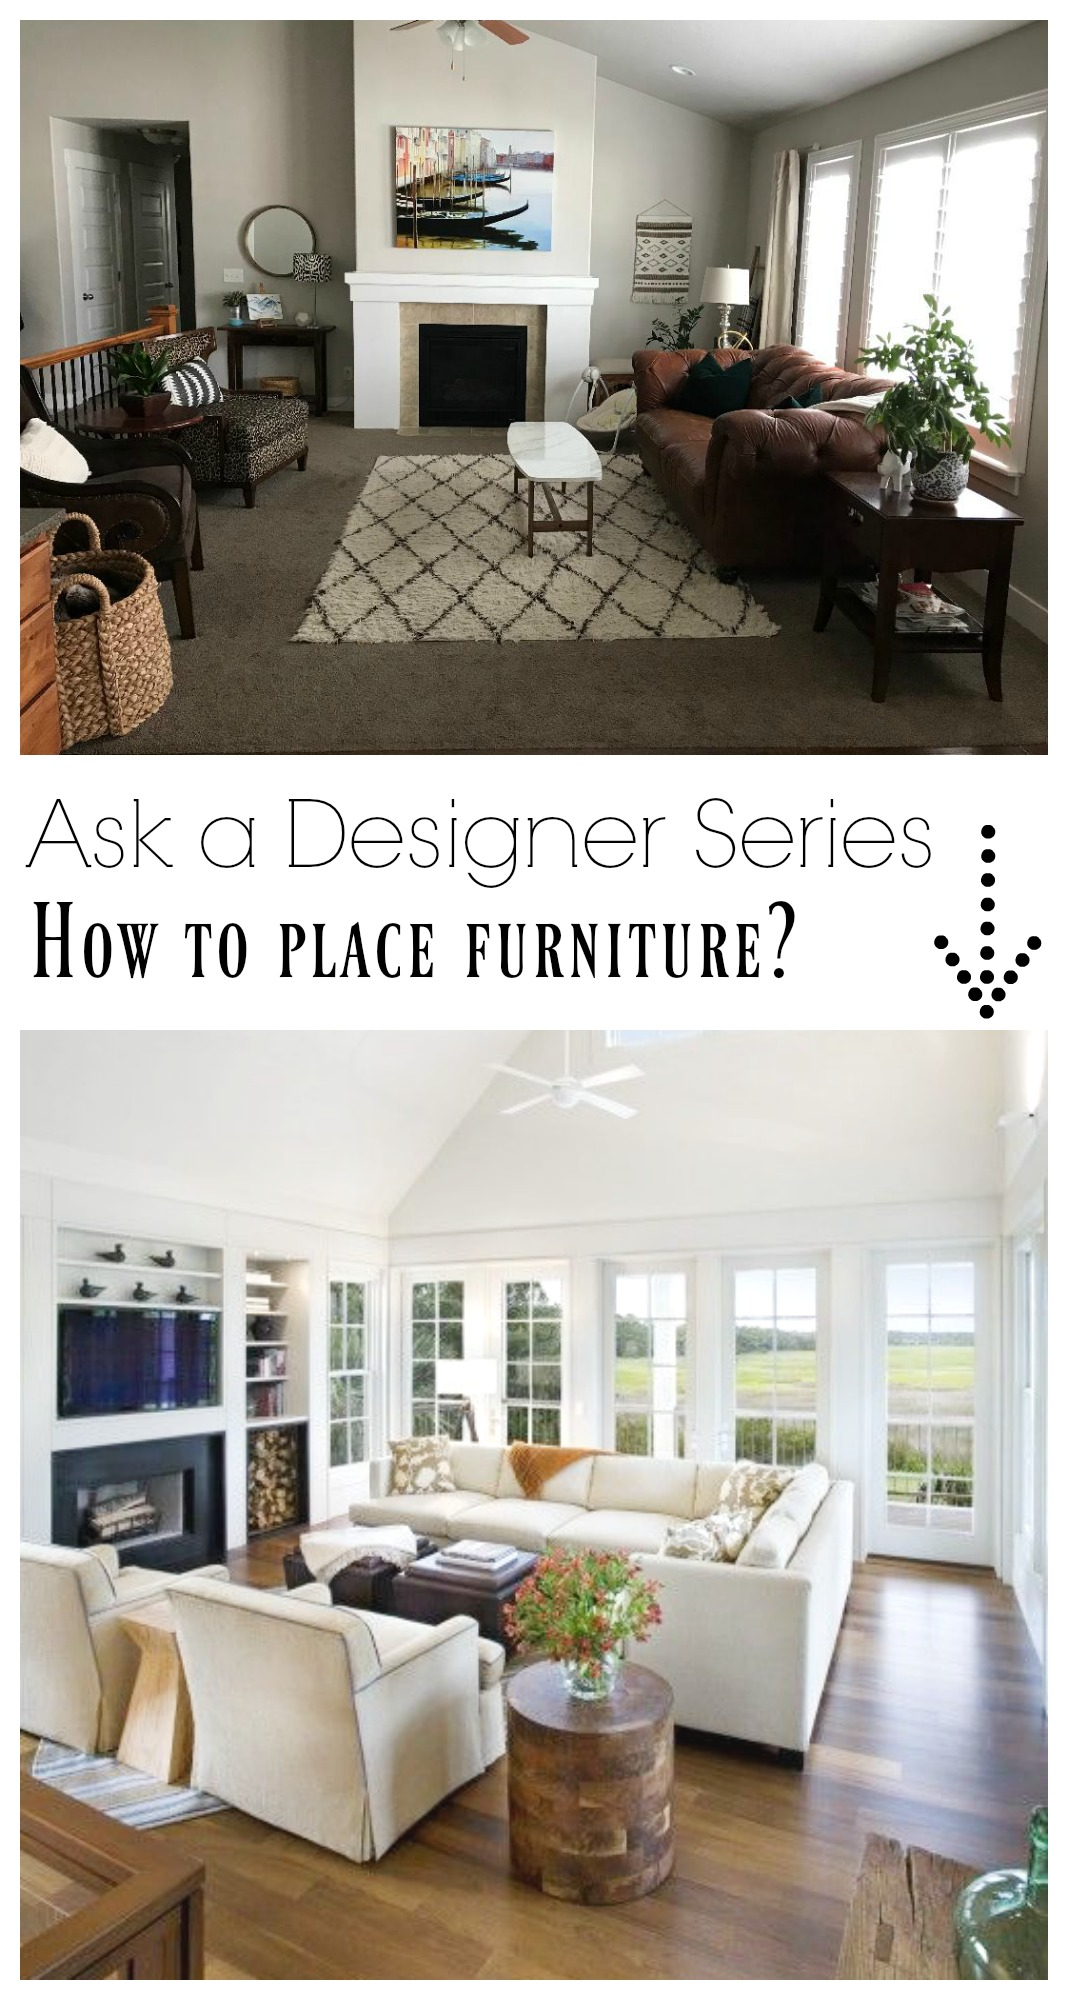 Ask a Designer Series- How to Place Furniture with Fireplace?